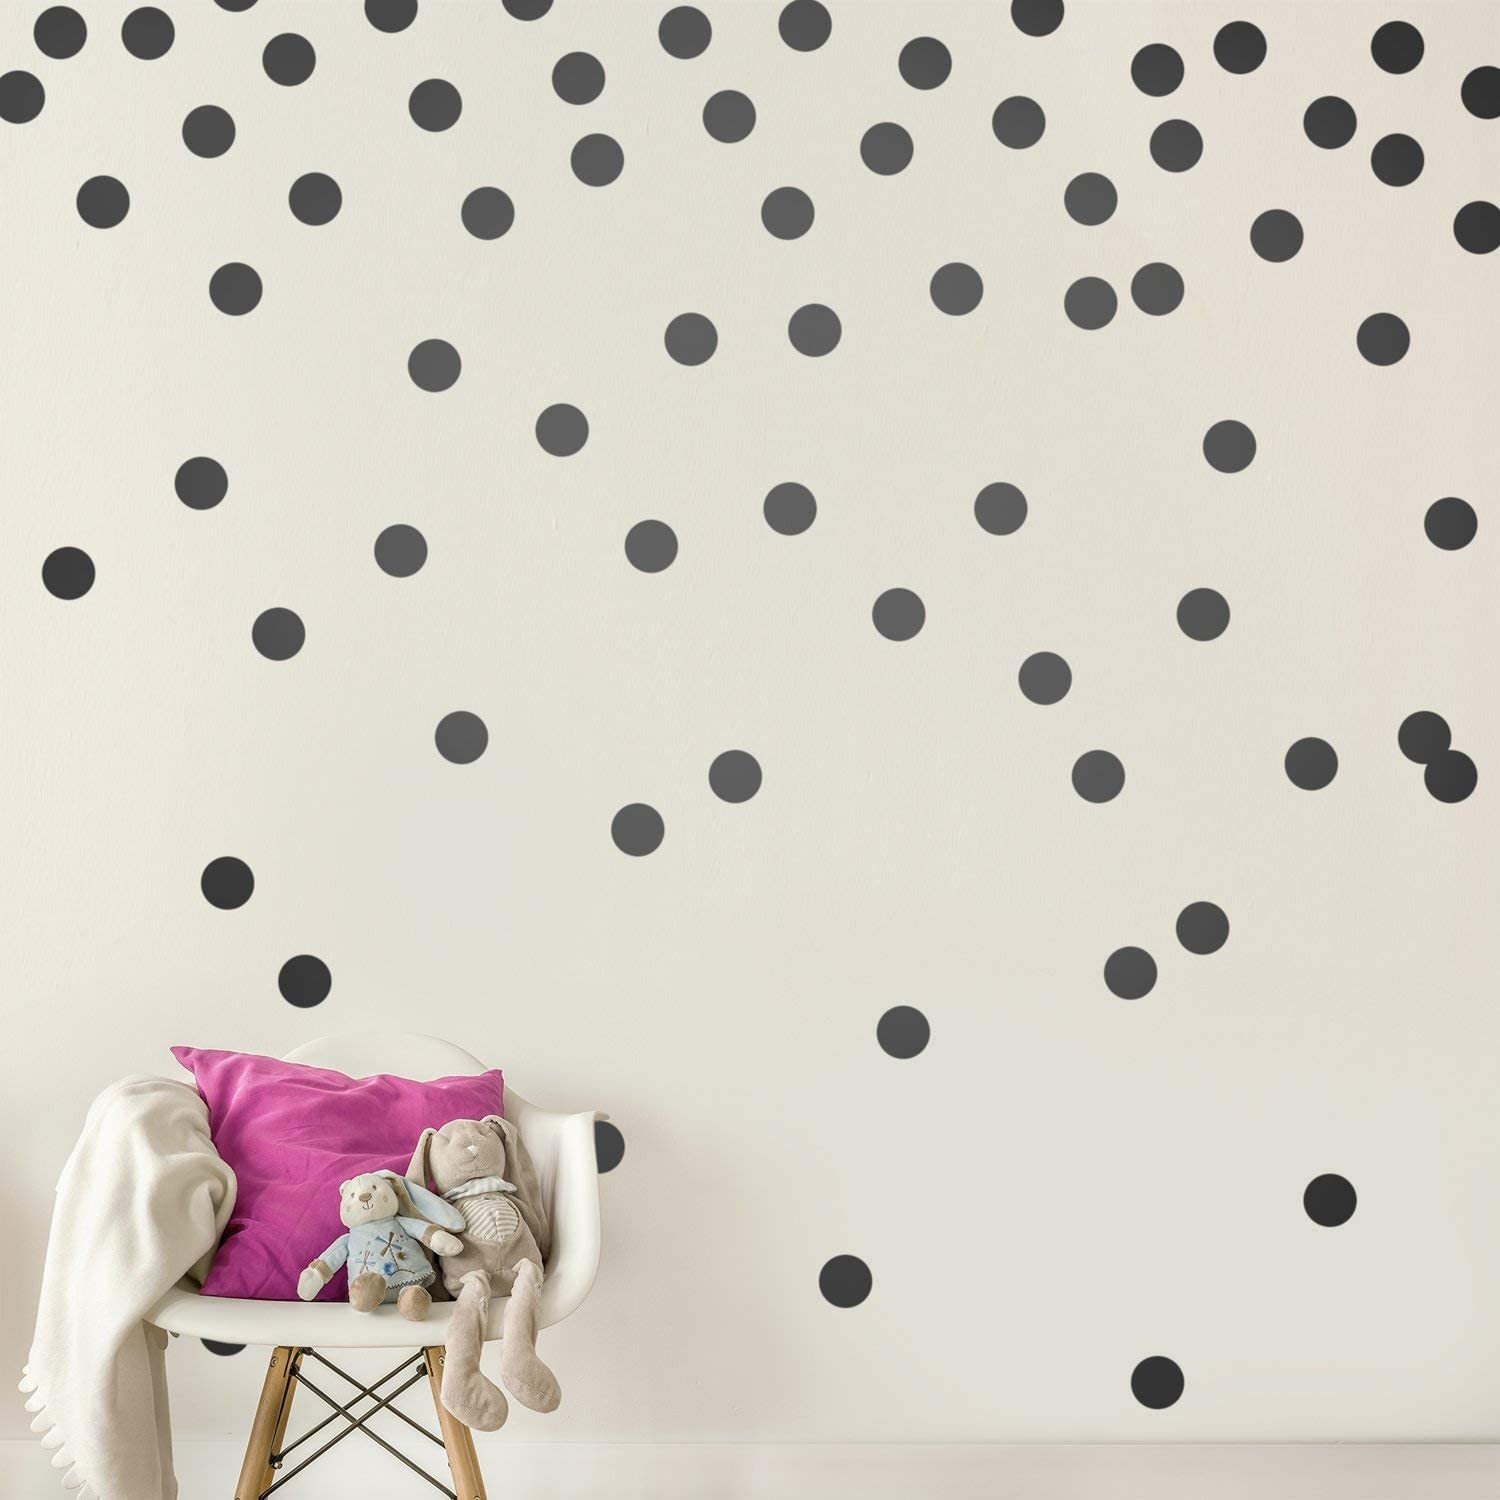 Wall Decal Dots (200 Decals) Easy to Peel Easy to Stick Safe on Painted Walls Removable Vinyl Polka Dot Decor Round Sticker Large Paper Sheet Set for Nursery Room (Black) v4